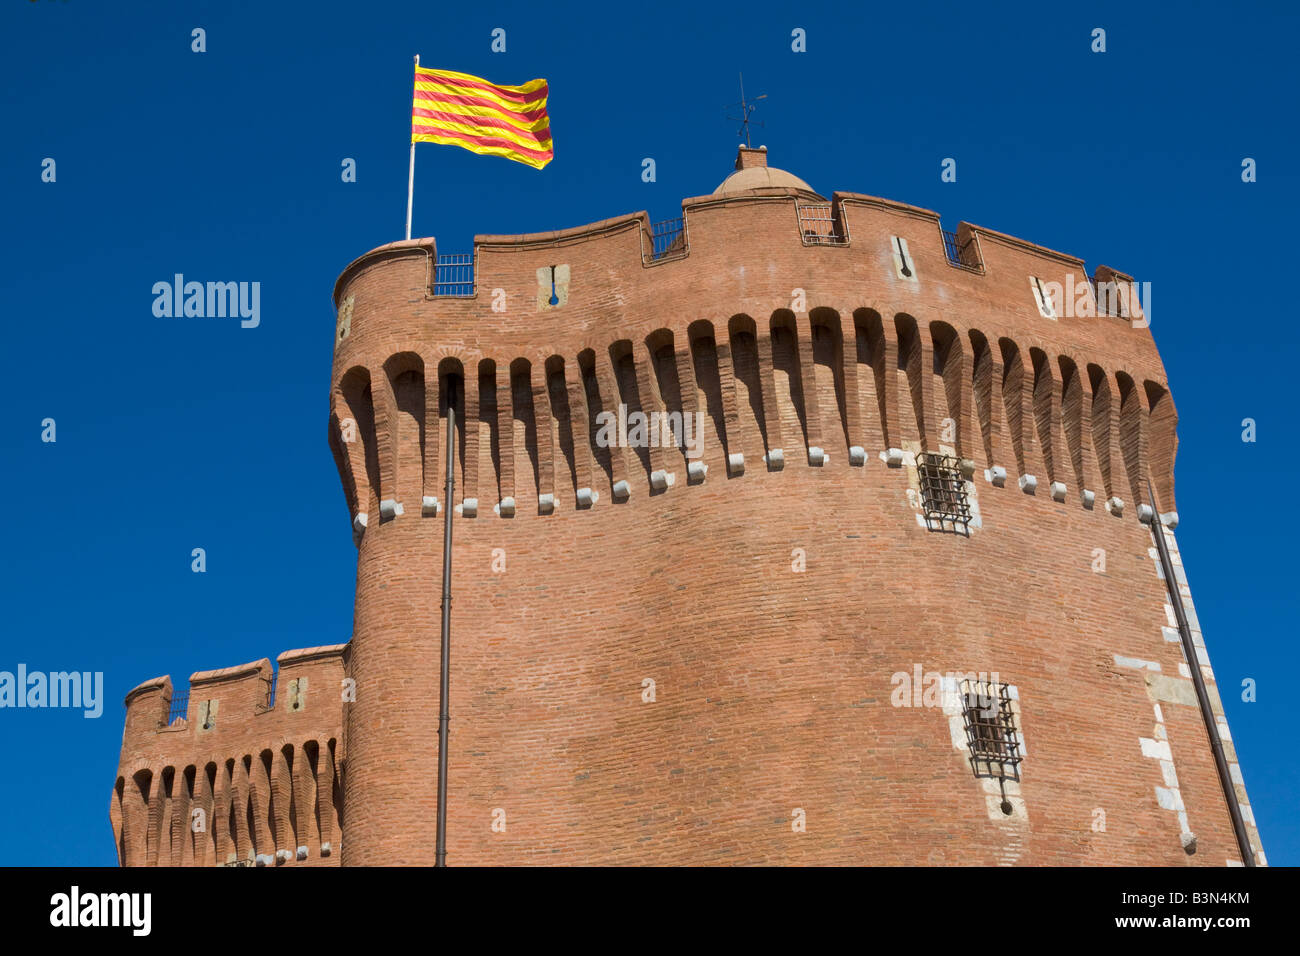 The Catalonian flag is blowing above the city gate 'Le Castillet'  in midtown Perpignan / Southern France - Stock Image